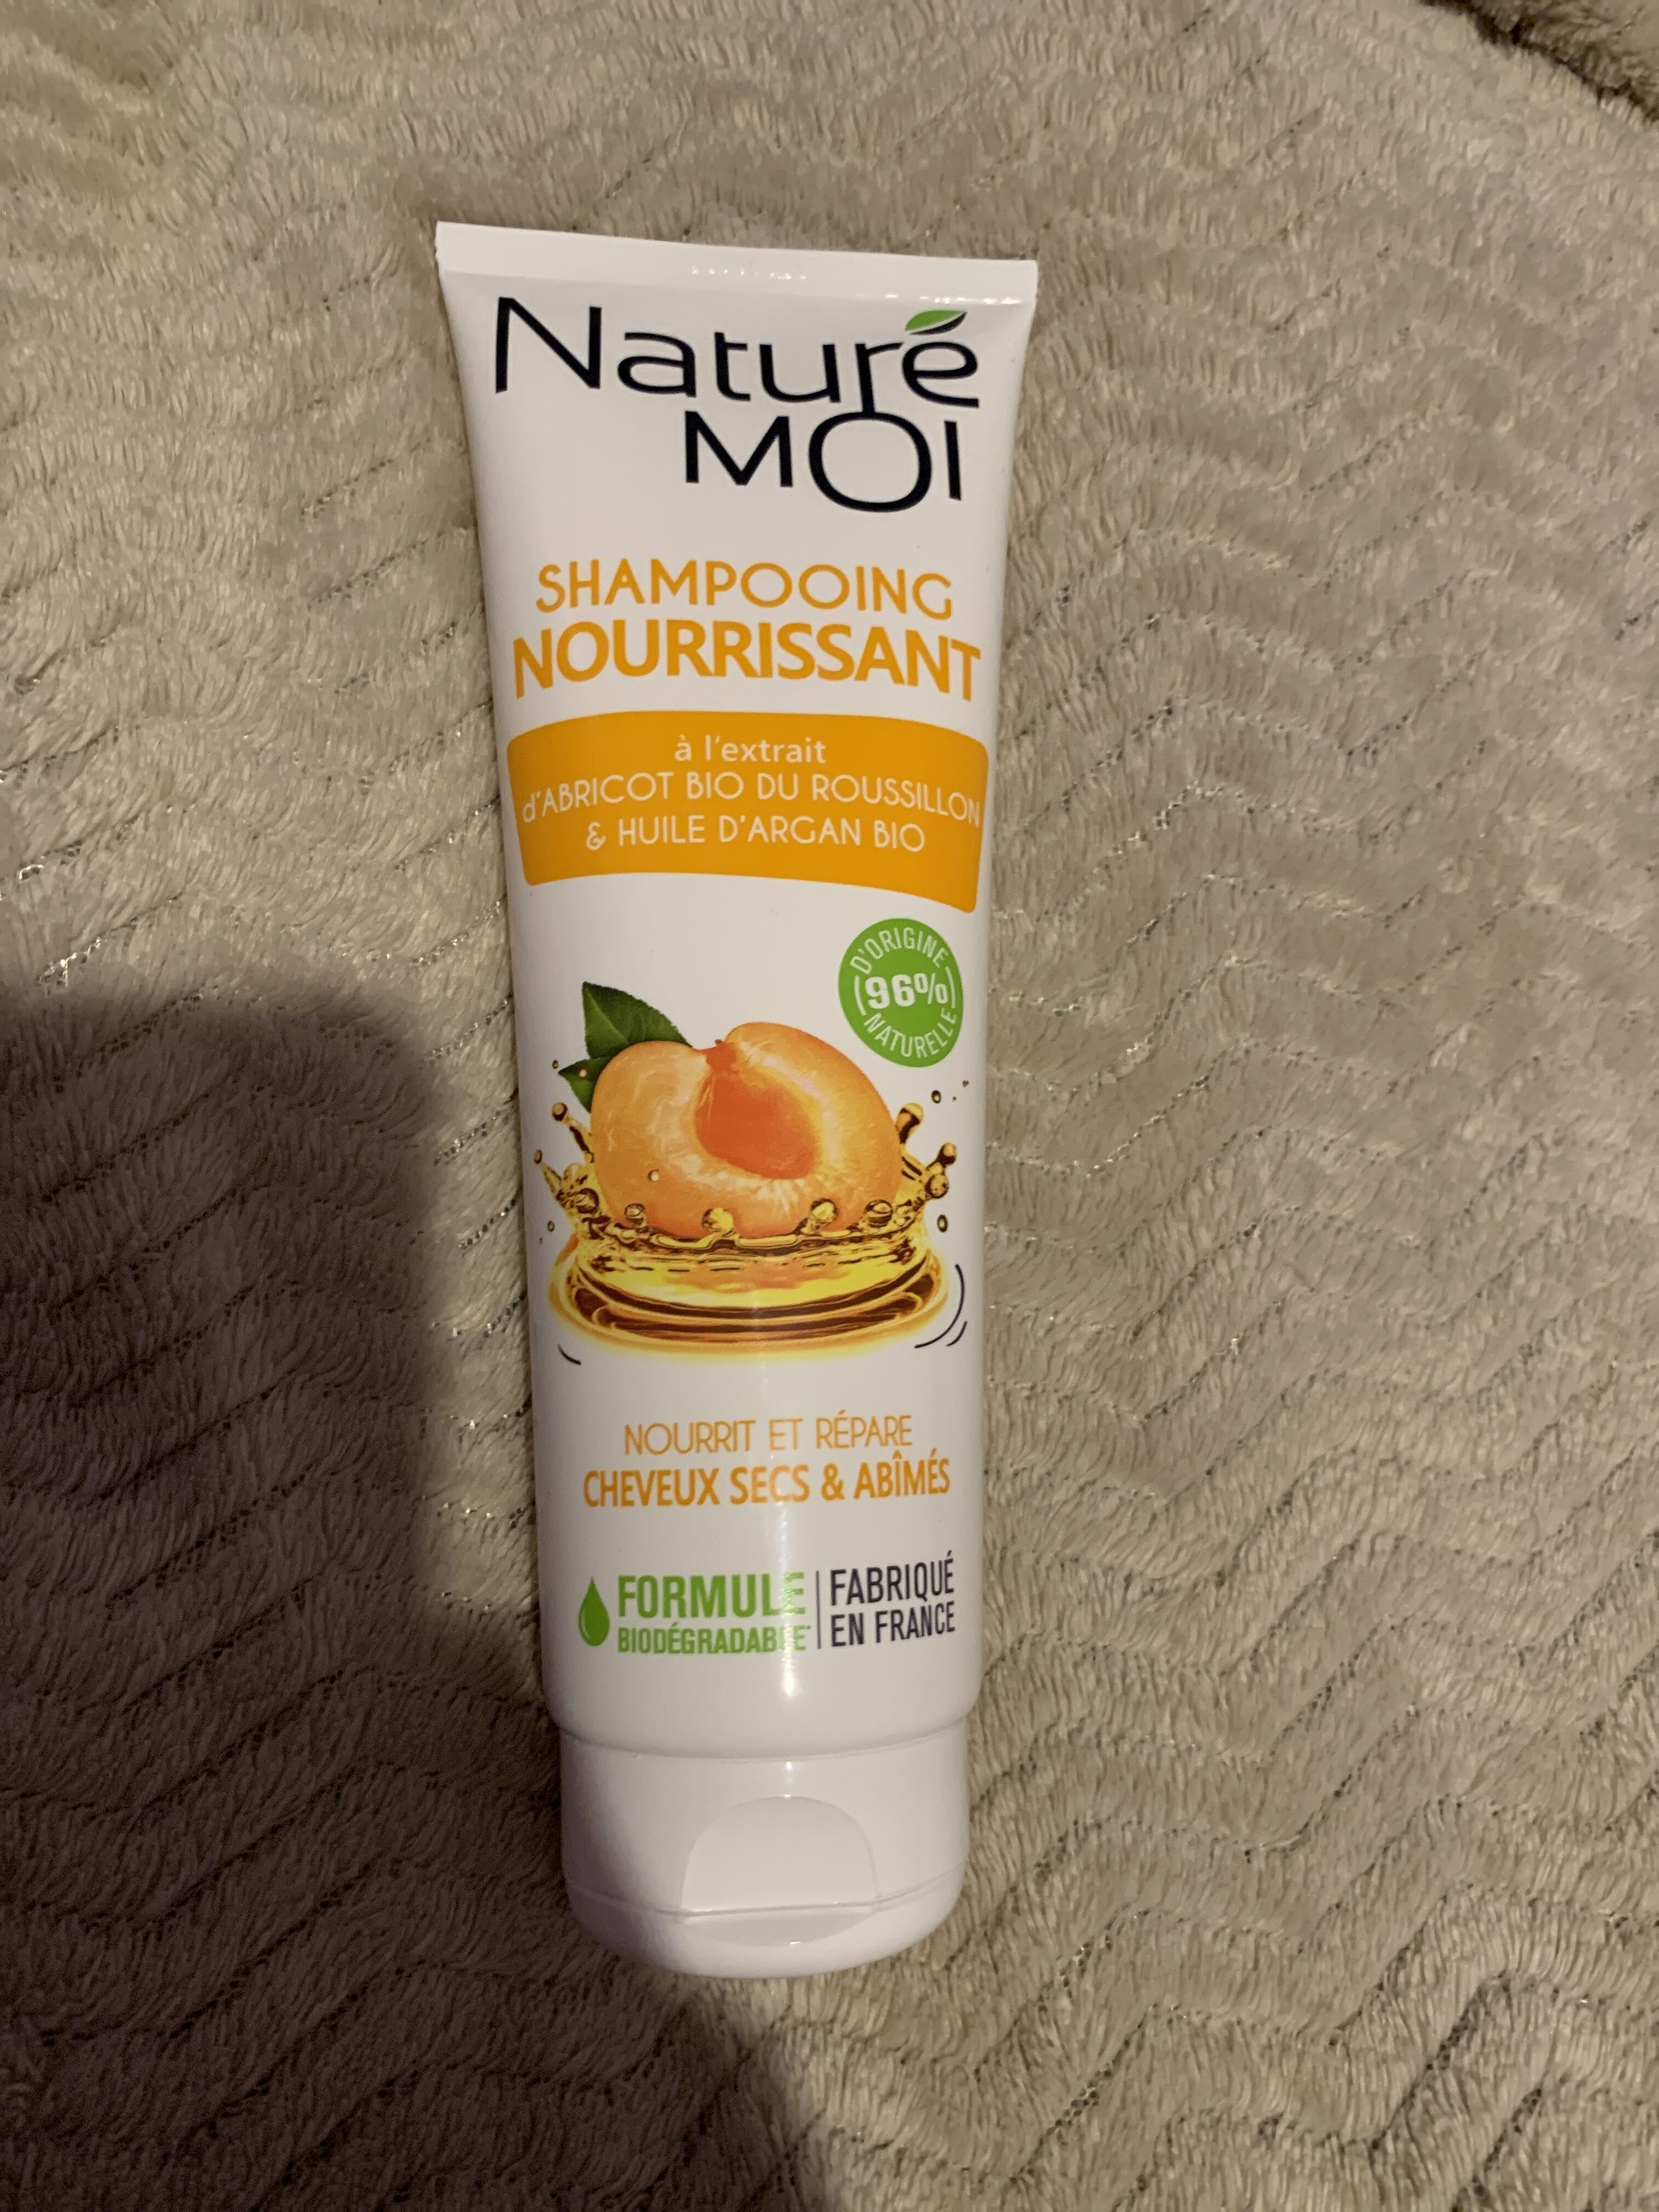 Shampoing nourrissant - Product - fr